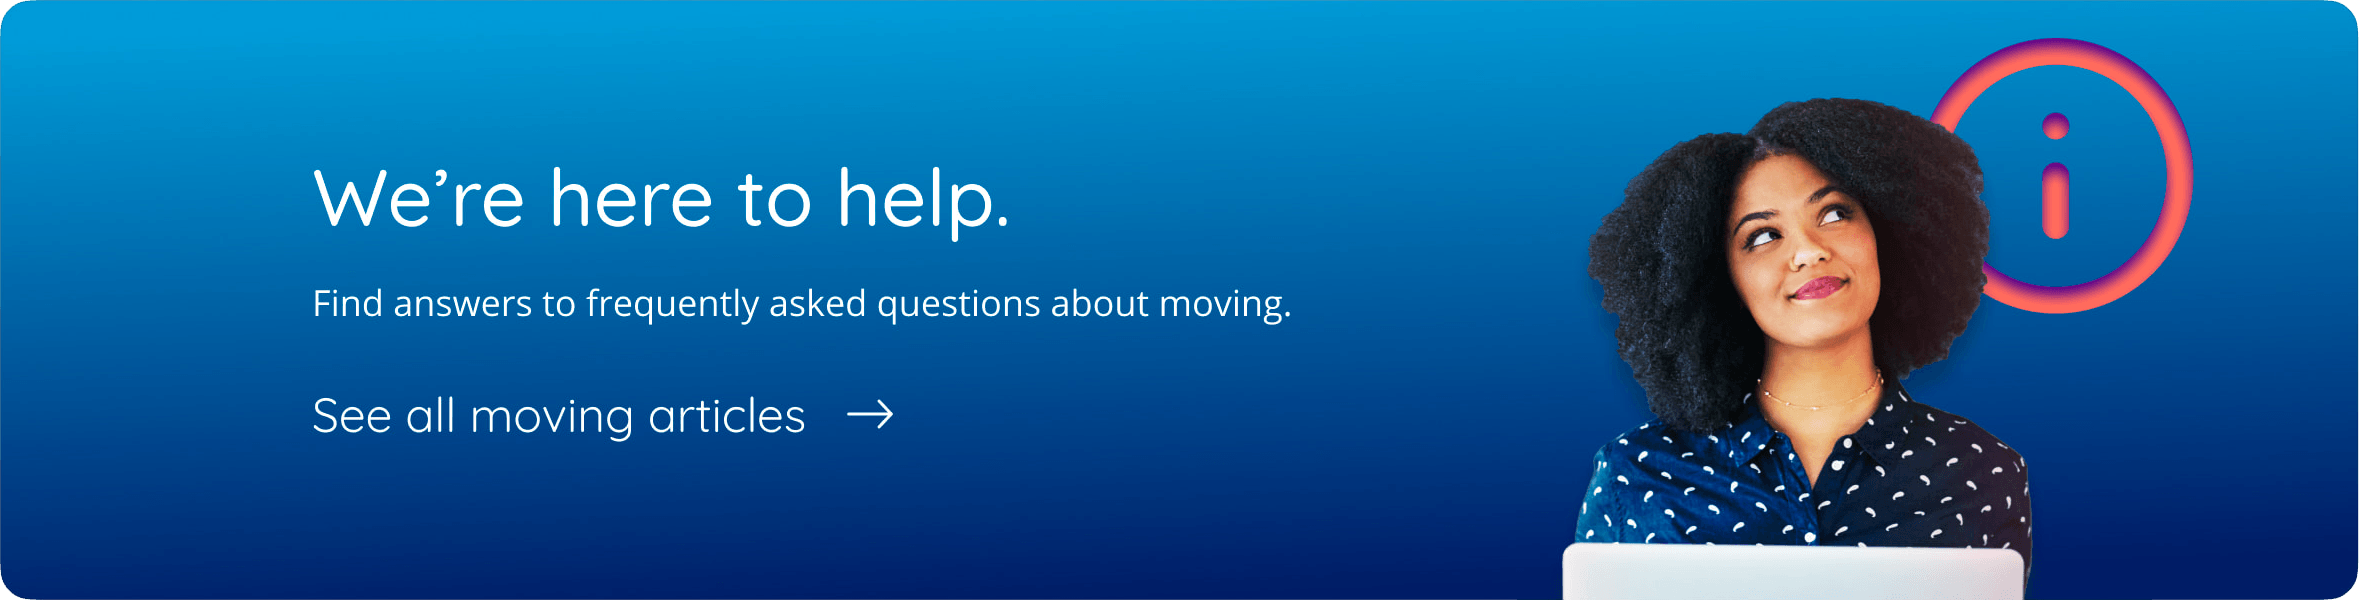 We're here to help Find answers to frequently asked questions about moving. See all moving articles